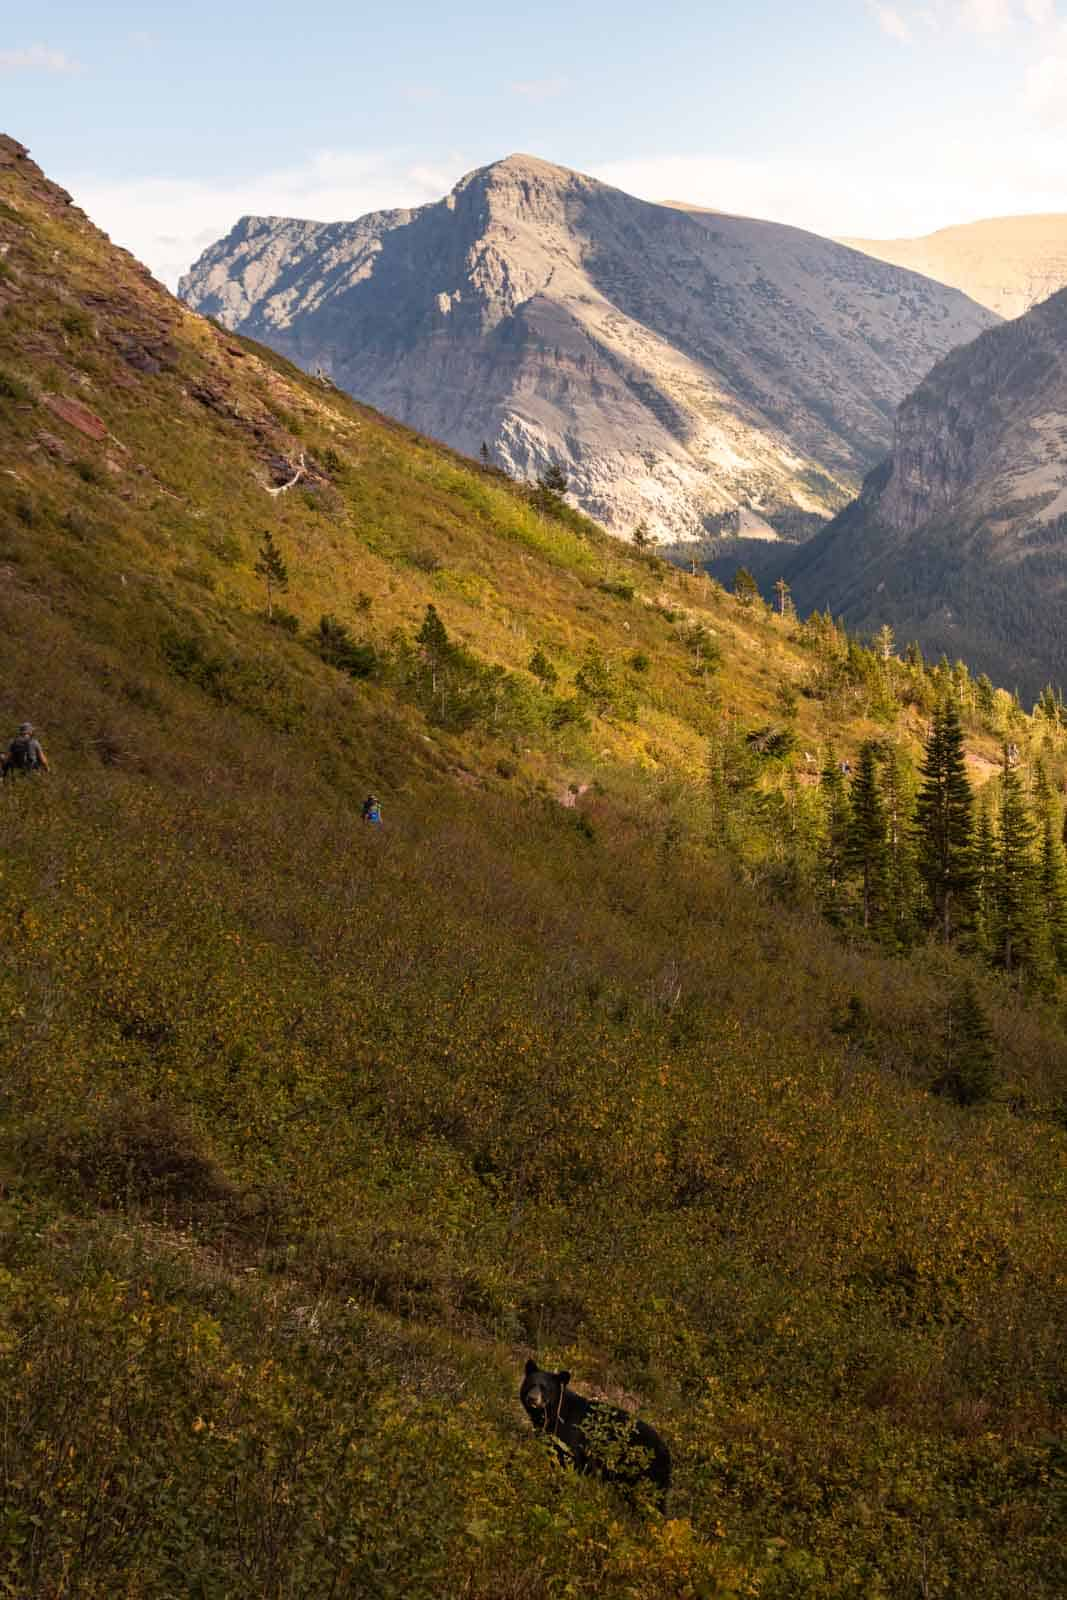 A bear on a hike in Glacier National Park